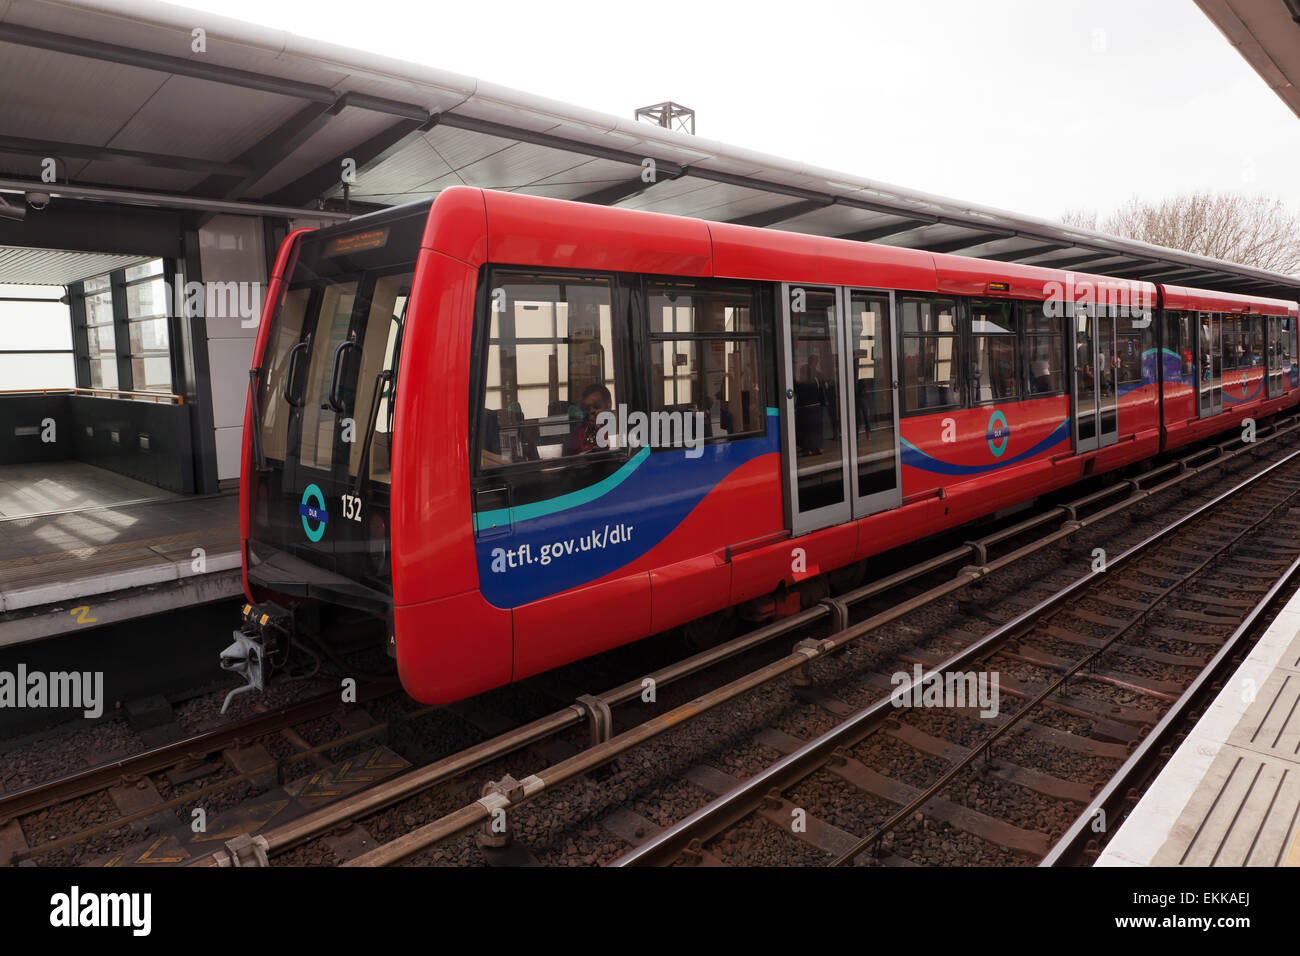 View of a Docklands Light Railway Train, as it waits at  Westferry  DLR Station. - Stock Image